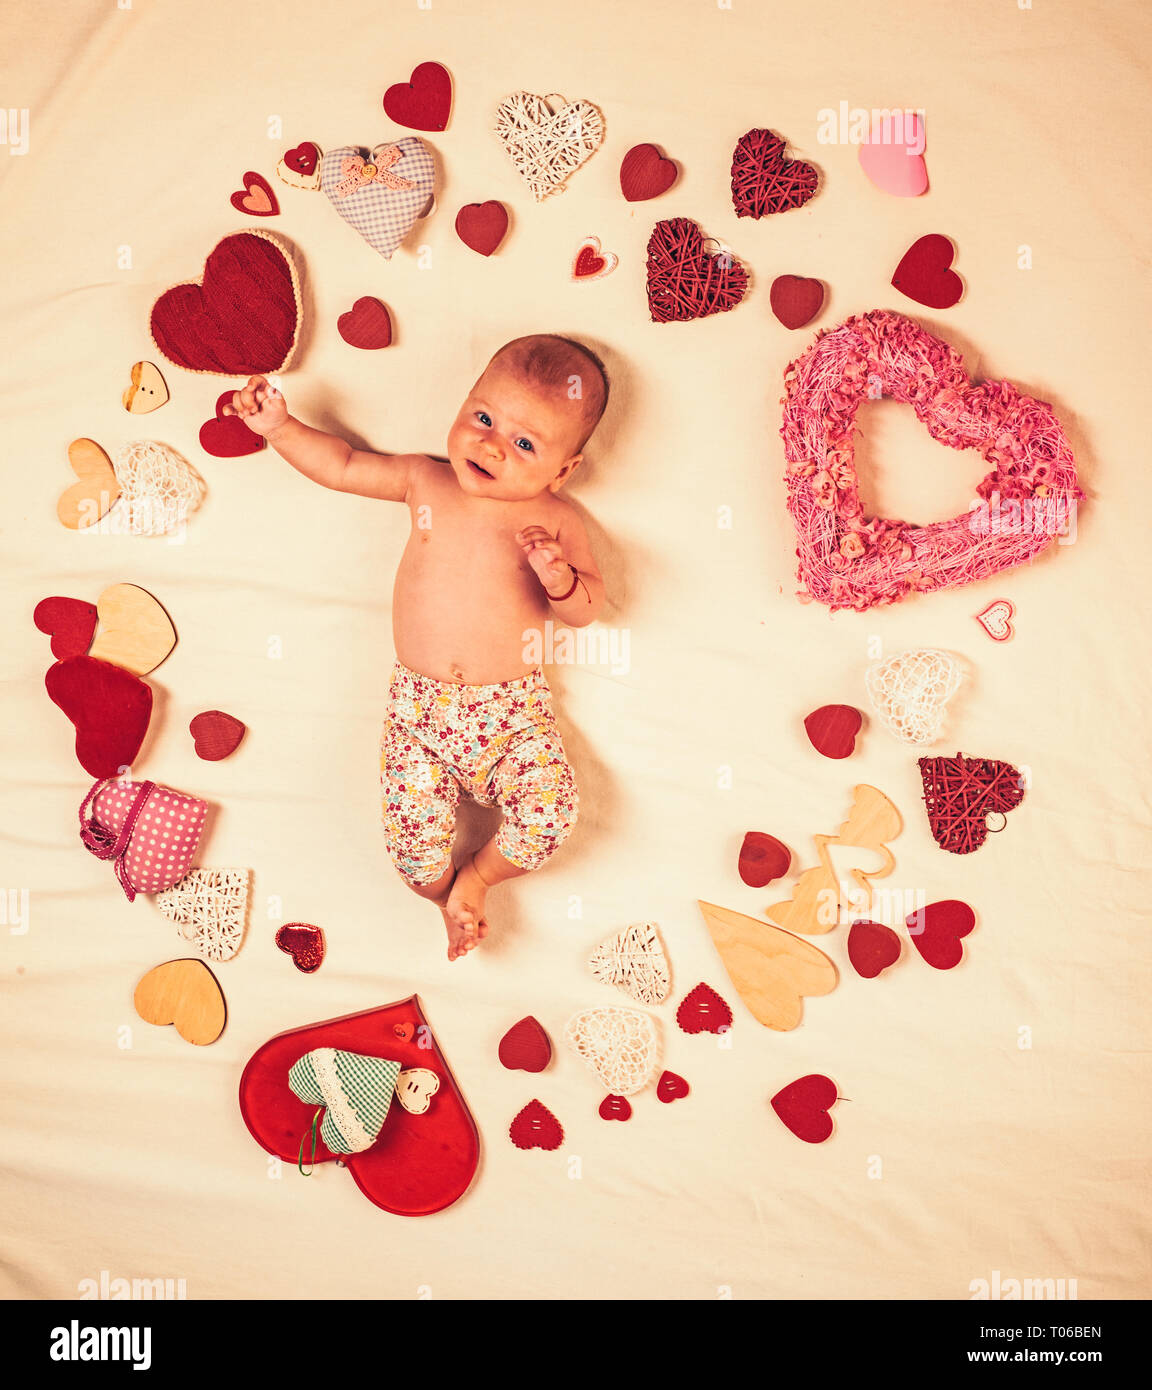 Pleasant timespending. Love. Portrait of happy little child. Sweet little baby. New life and birth. Family. Child care. Small girl among red hearts - Stock Image